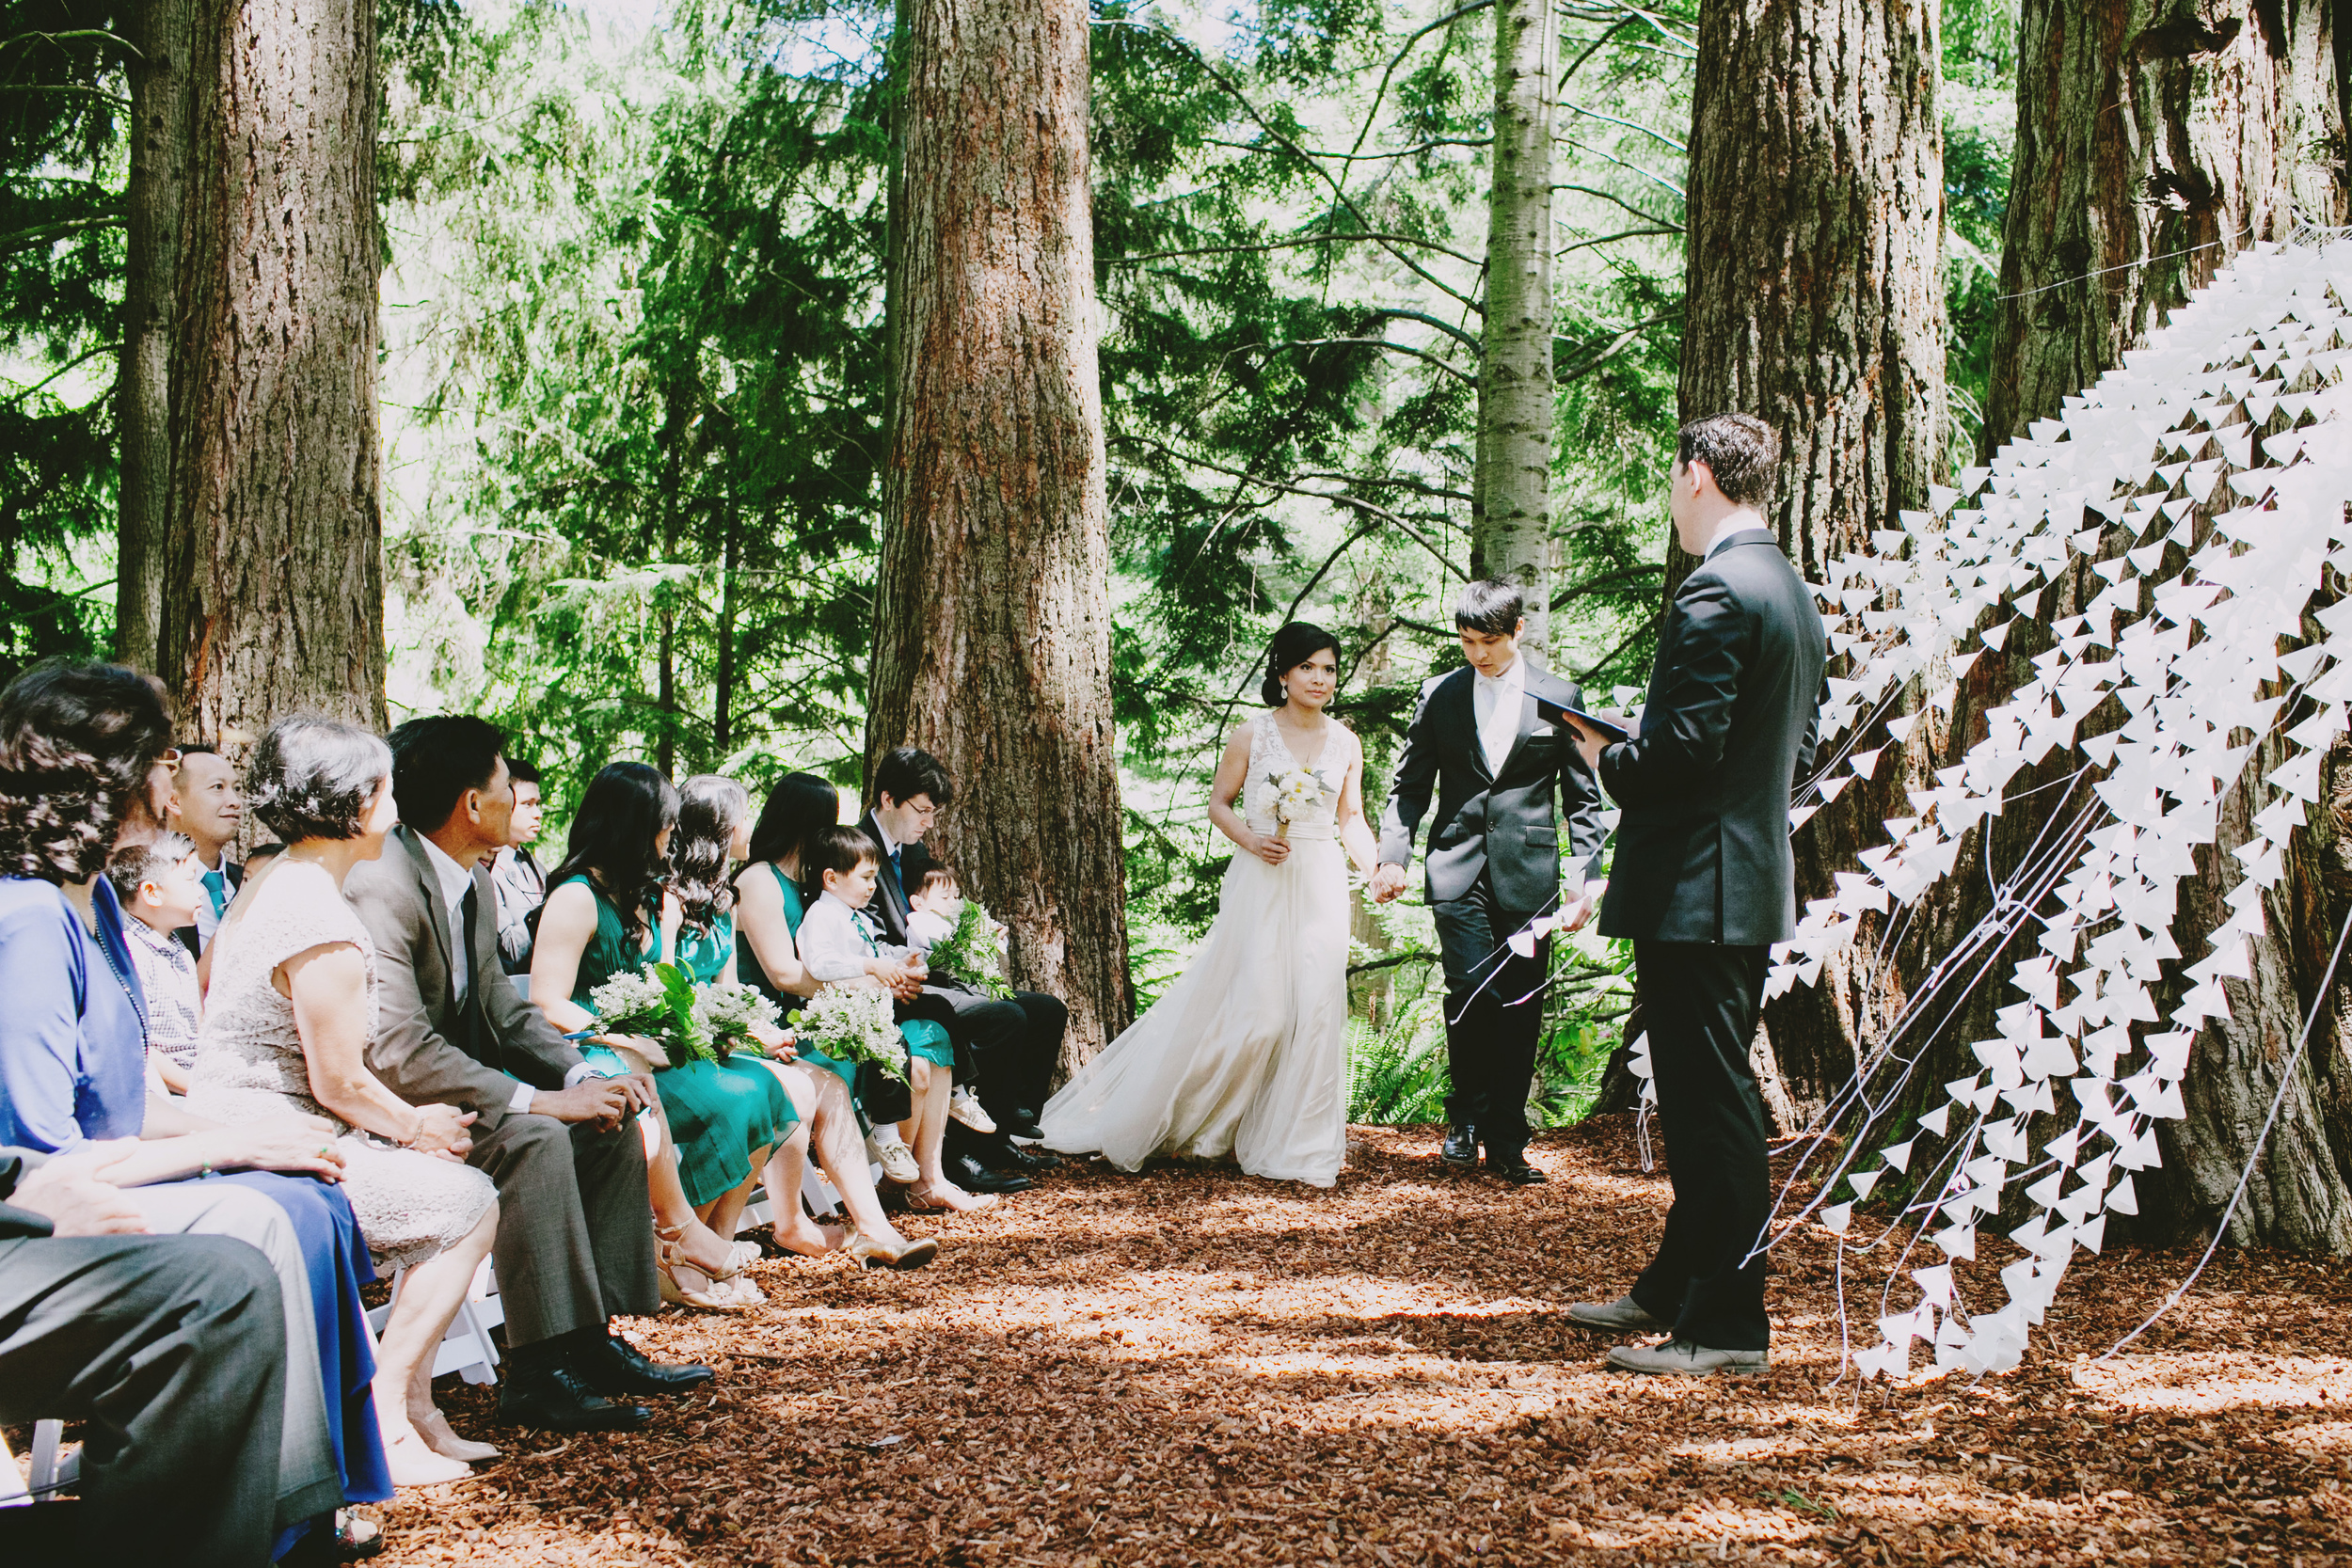 Tilden_Wedding_Berkeley-08.JPG